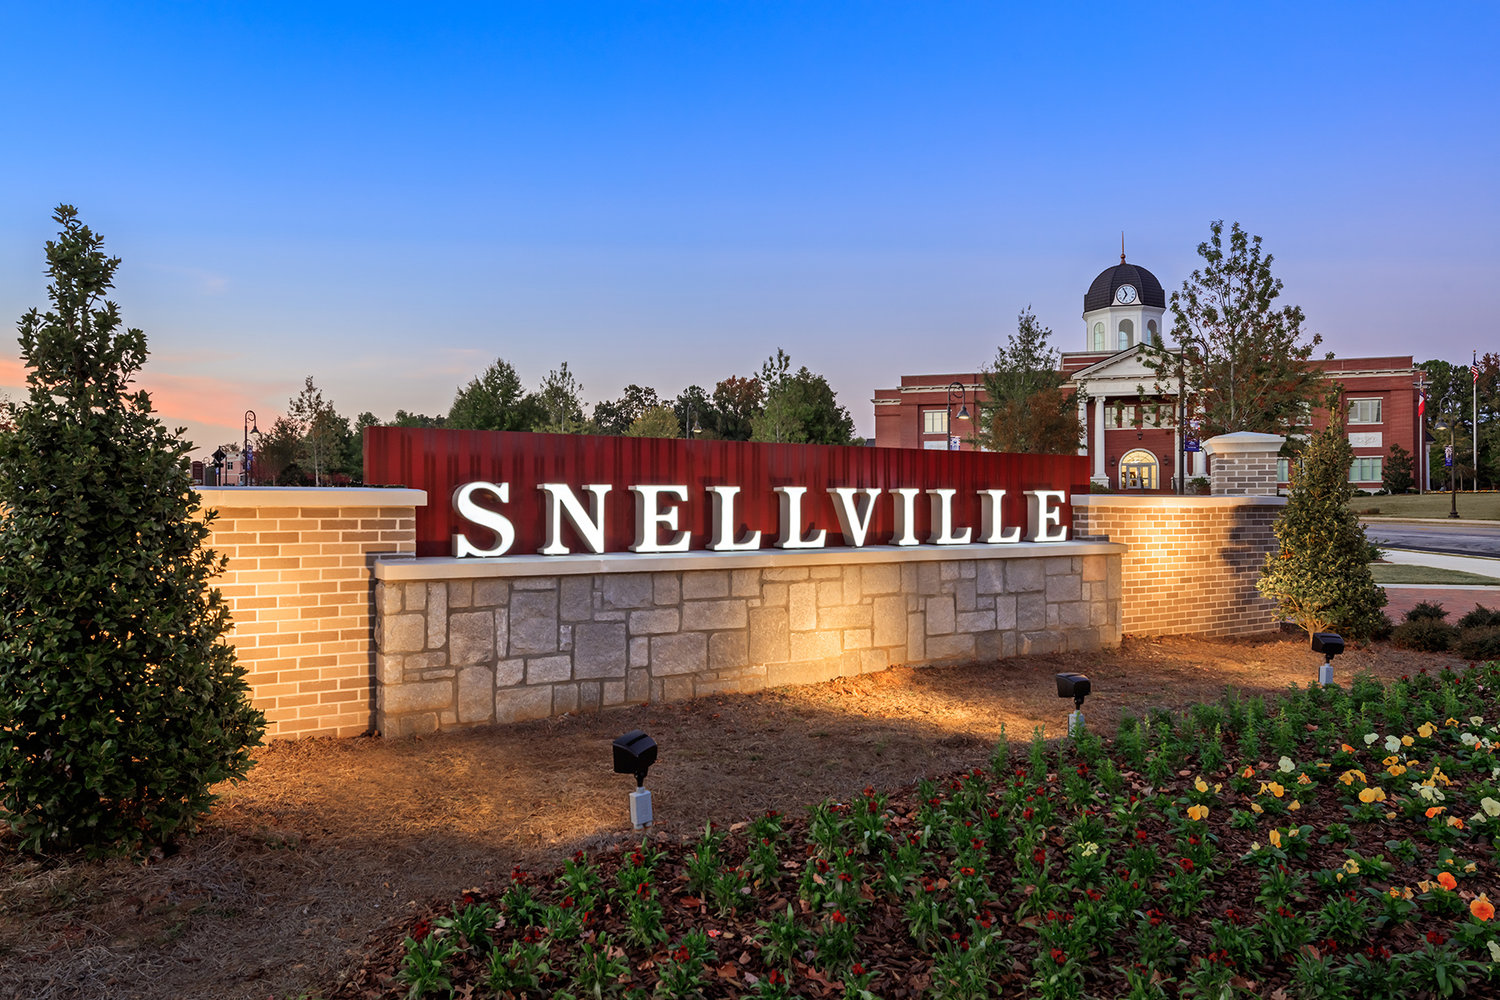 the City of Snellville